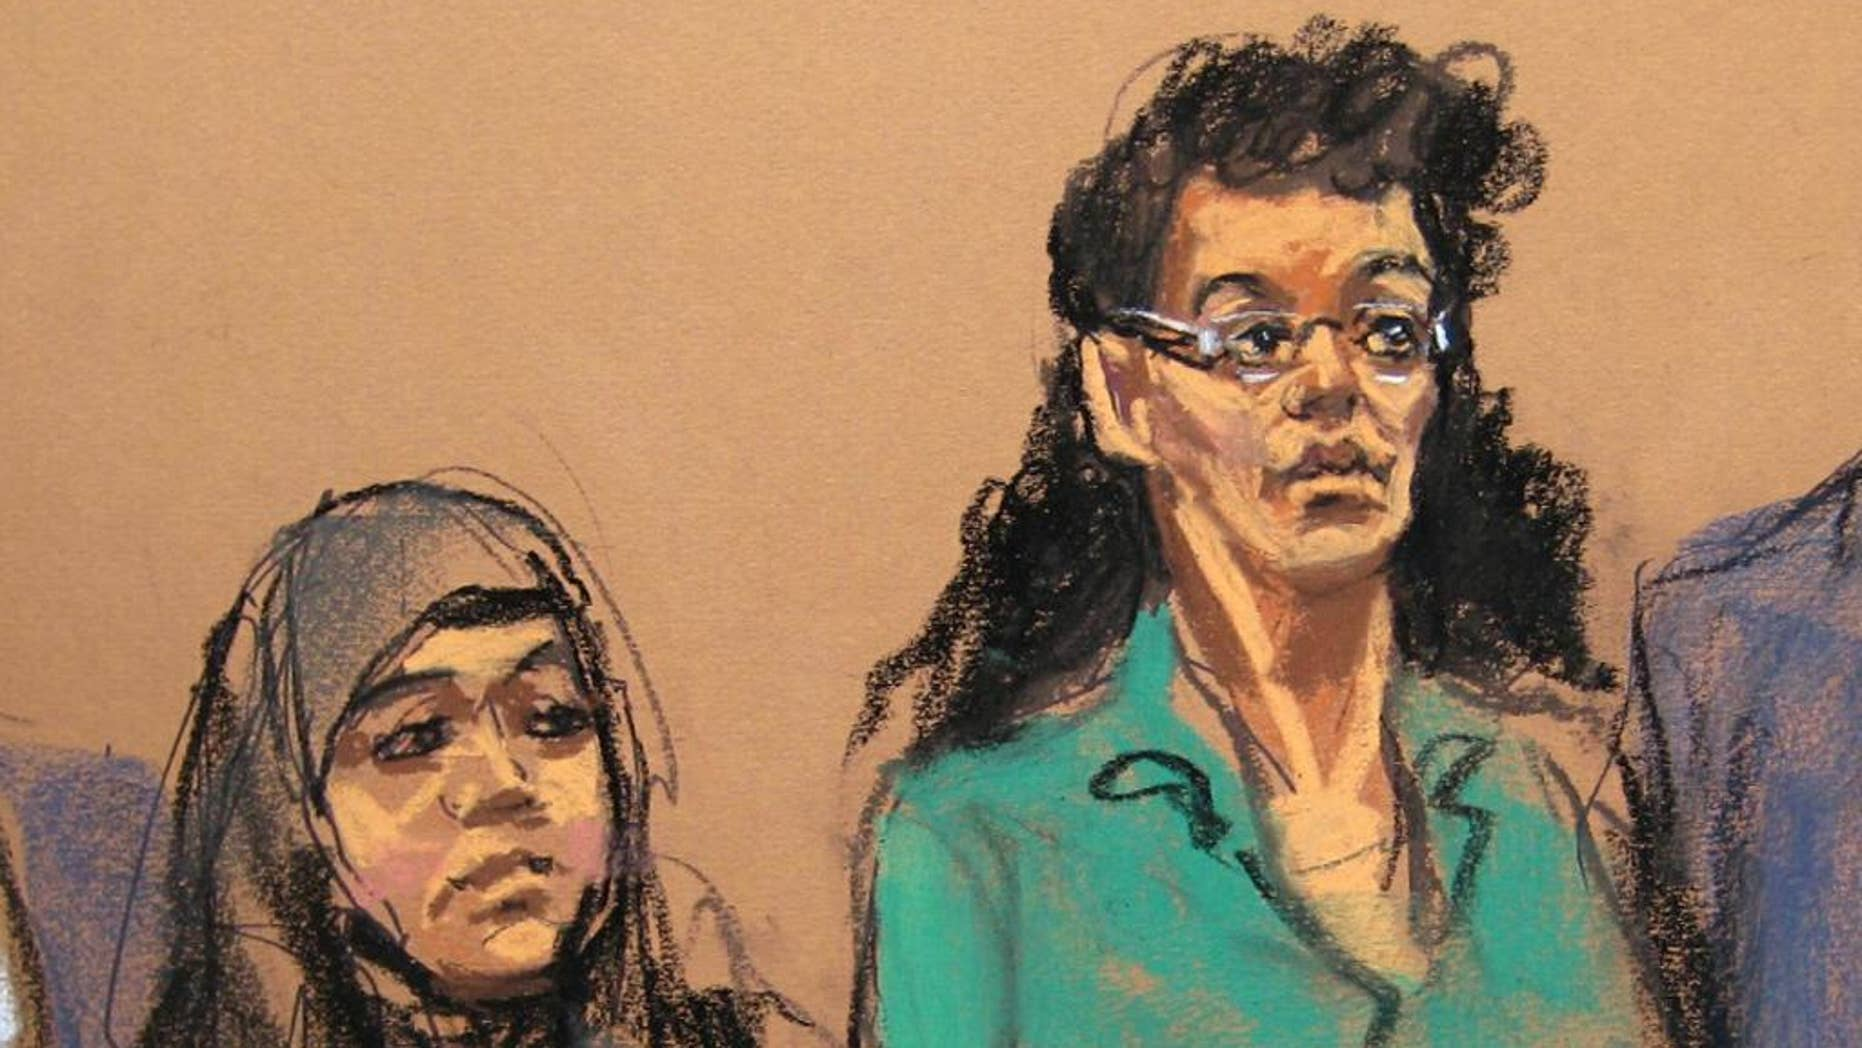 "FILE- In this April 2, 2015 courtroom sketch, defendants Noelle Velentzas, left and Asia Siddiqui, appear at federal court in New York on charges they plotted to wage violent jihad by building a homemade bomb and using it for a Boston Marathon-type terror attack. According to prosecutors, the pair weren't interested in taking on the subservient role of going overseas to marry the militant group fighters, but sought to ""make history"" on their own by building a bomb and attacking a domestic target. (AP Photo/Jane Rosenberg, File)"